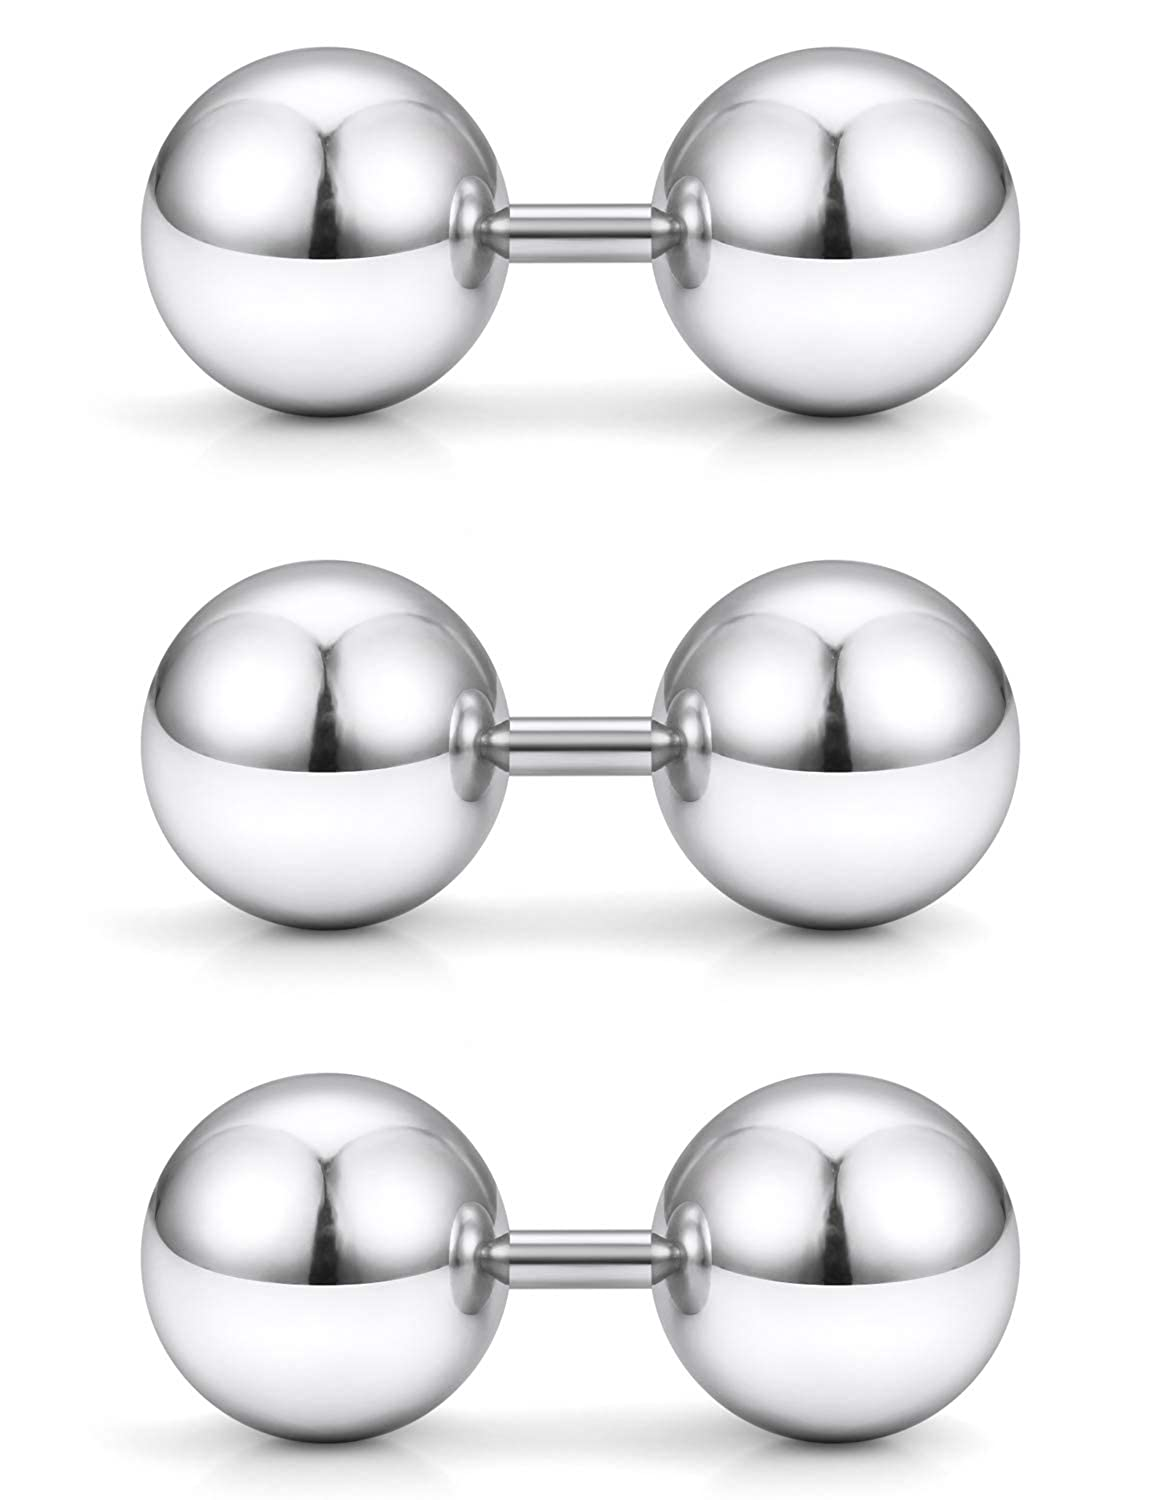 Yaalozei 3PCS 14G Stainless Steel Externally Threaded Straight Barbell Tragus Ring Cartilage Jewelry w 6mm 8mm 10mm Big Balls B07GS1QMVM_US